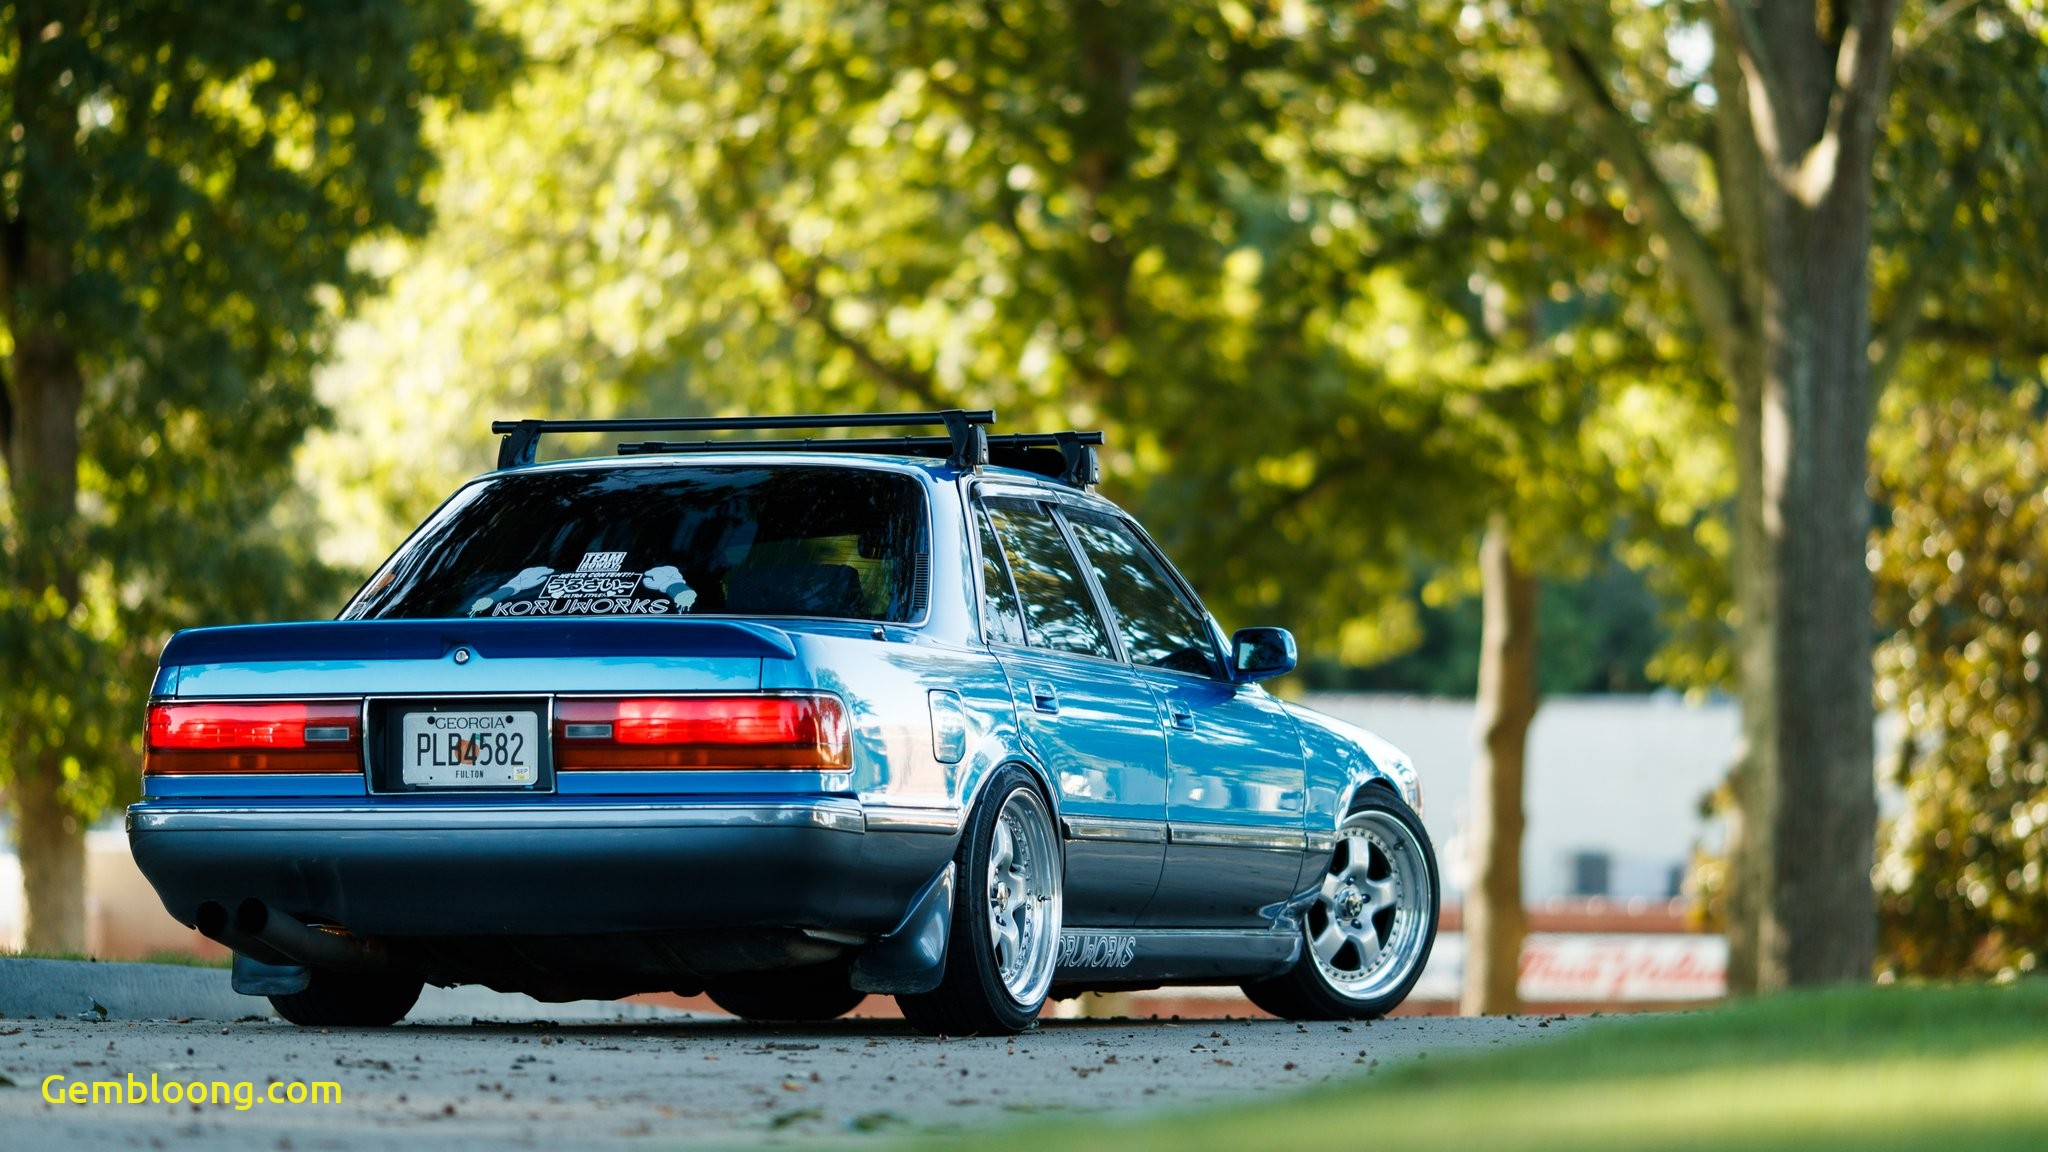 Toyota Cressida for Sale Inspirational the Perfect Classic Jdm Daily Super Clean 90s Spec 1jz